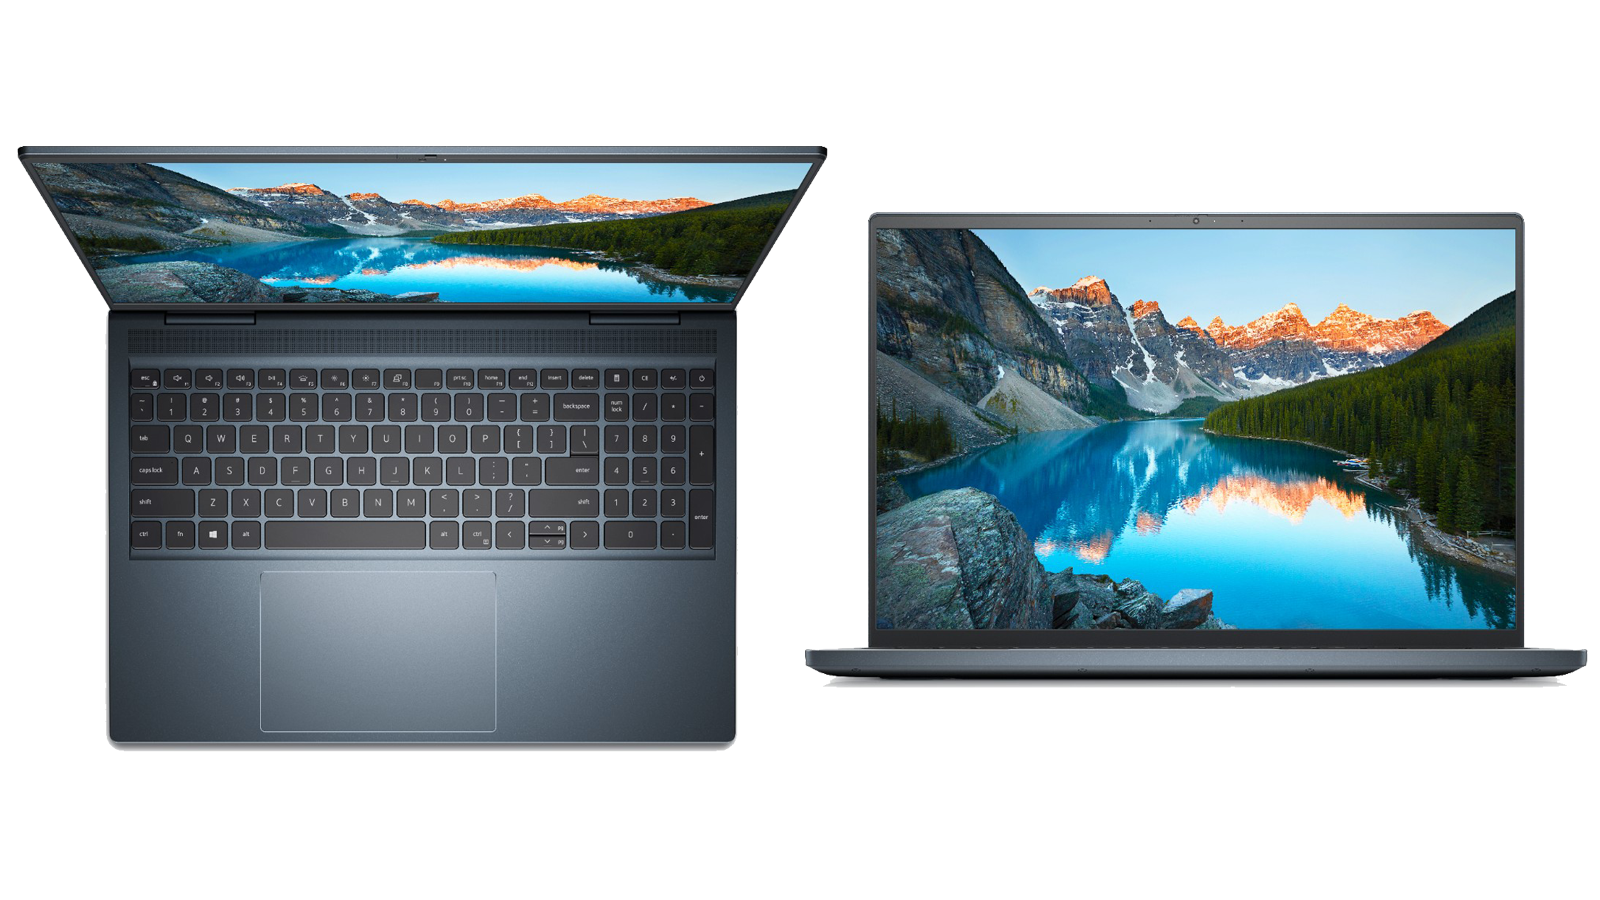 Top-down and front views of the Dell Inspiron 16 Plus